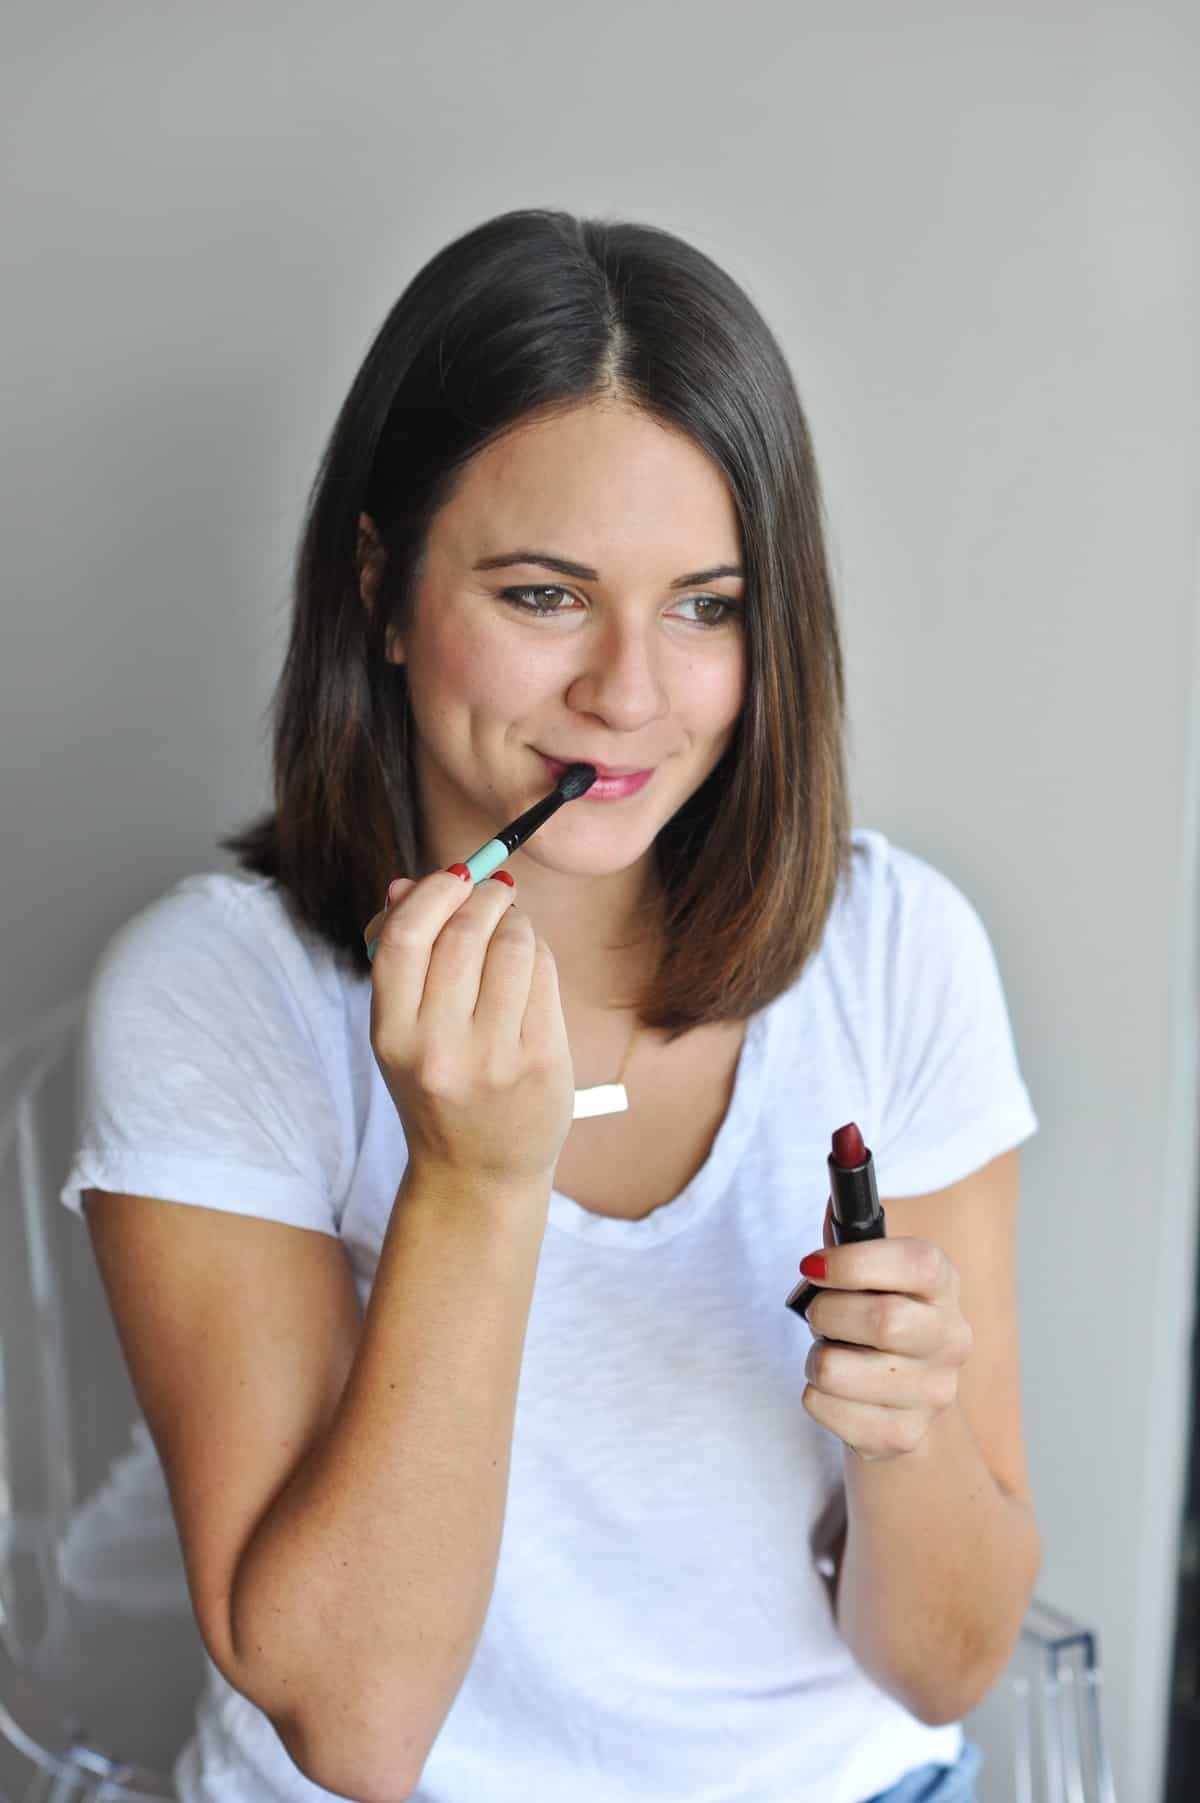 mary kay lipstick, how to wear 1 lipstick 3 ways via @mystylevita [My Style Vita]